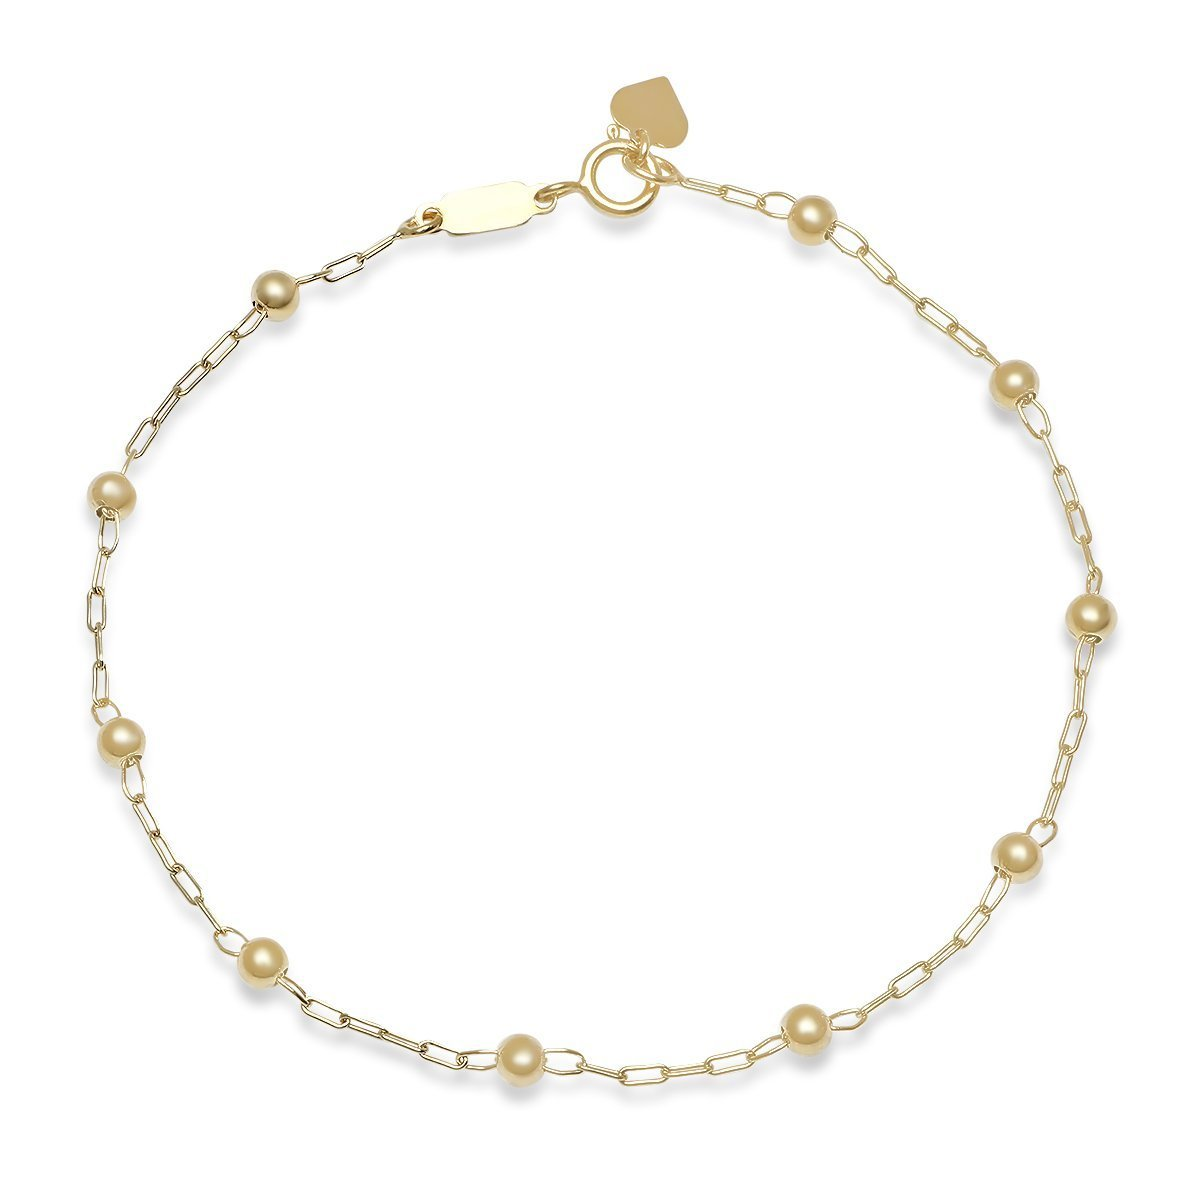 Pori Jewelers 14K Solid Gold 3.0mm Beaded Ball Bracelets-7.5'' - Made in Italy- Choose your charm and color (Heart, yellow-gold)